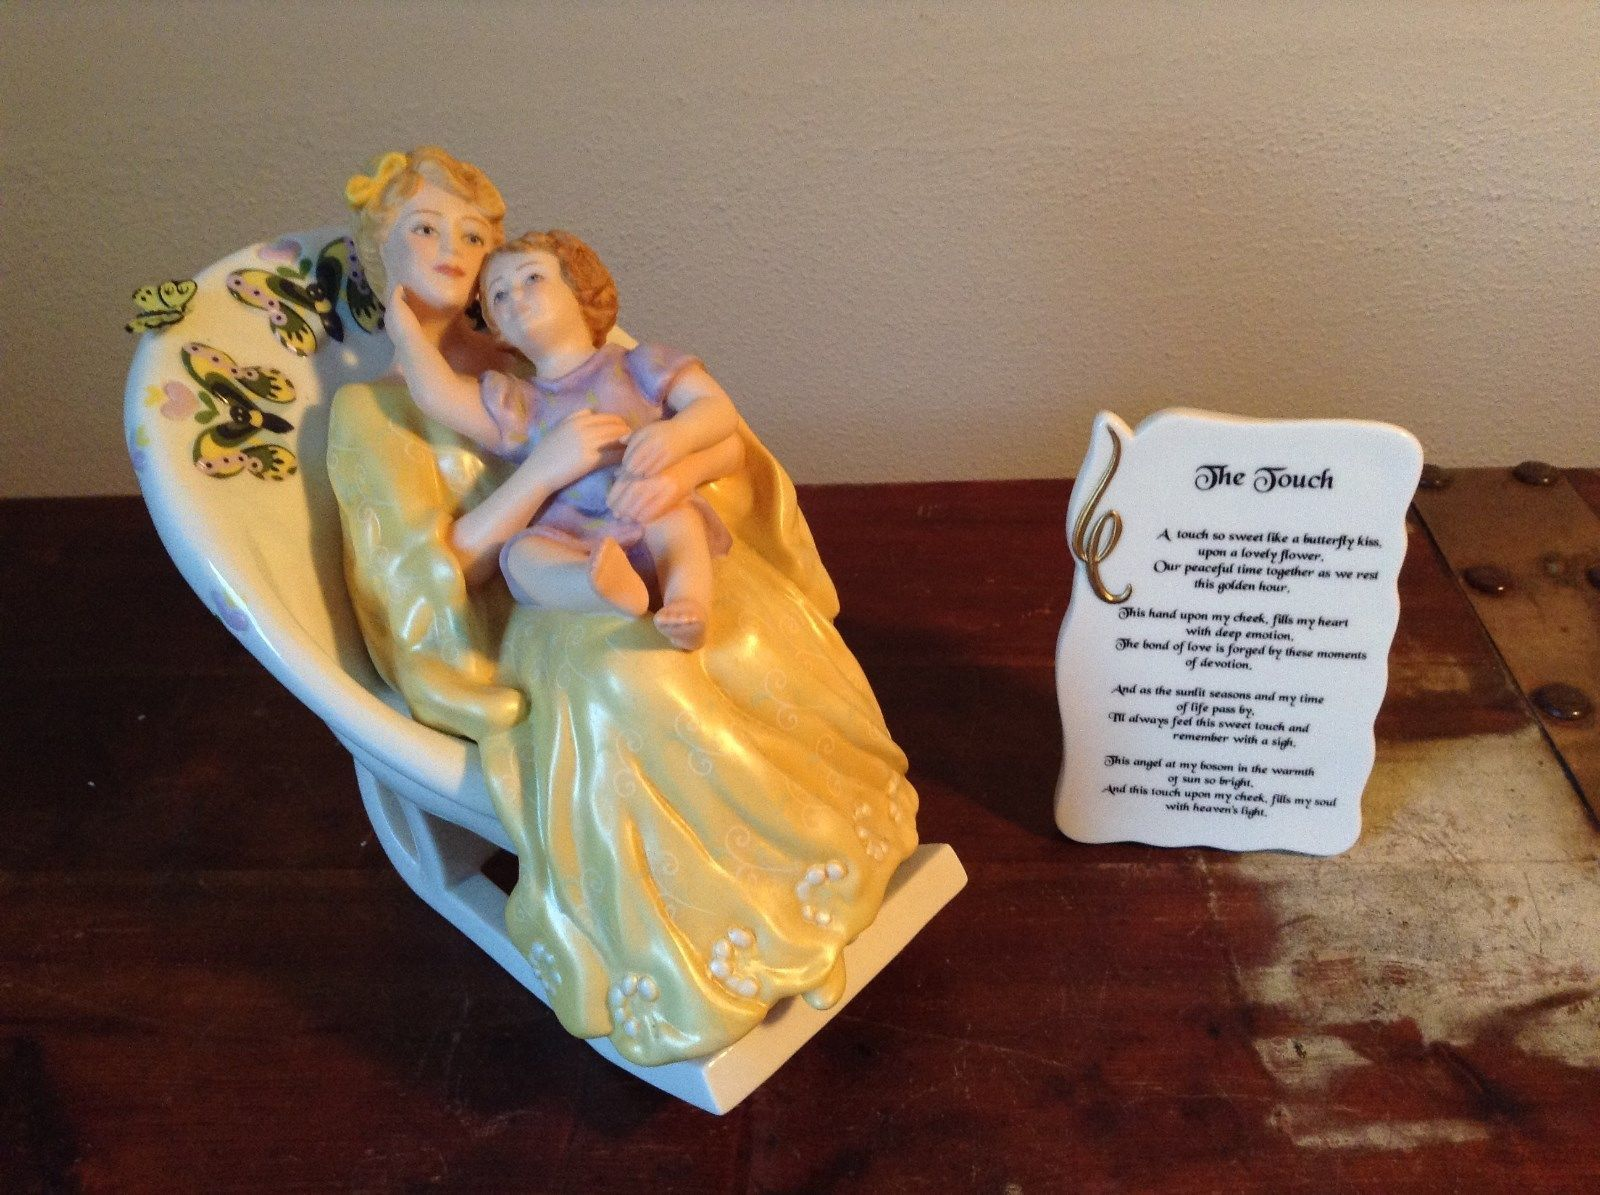 Mother with Child in Rocking Chair Porcelain Figurine The Touch by Vivi